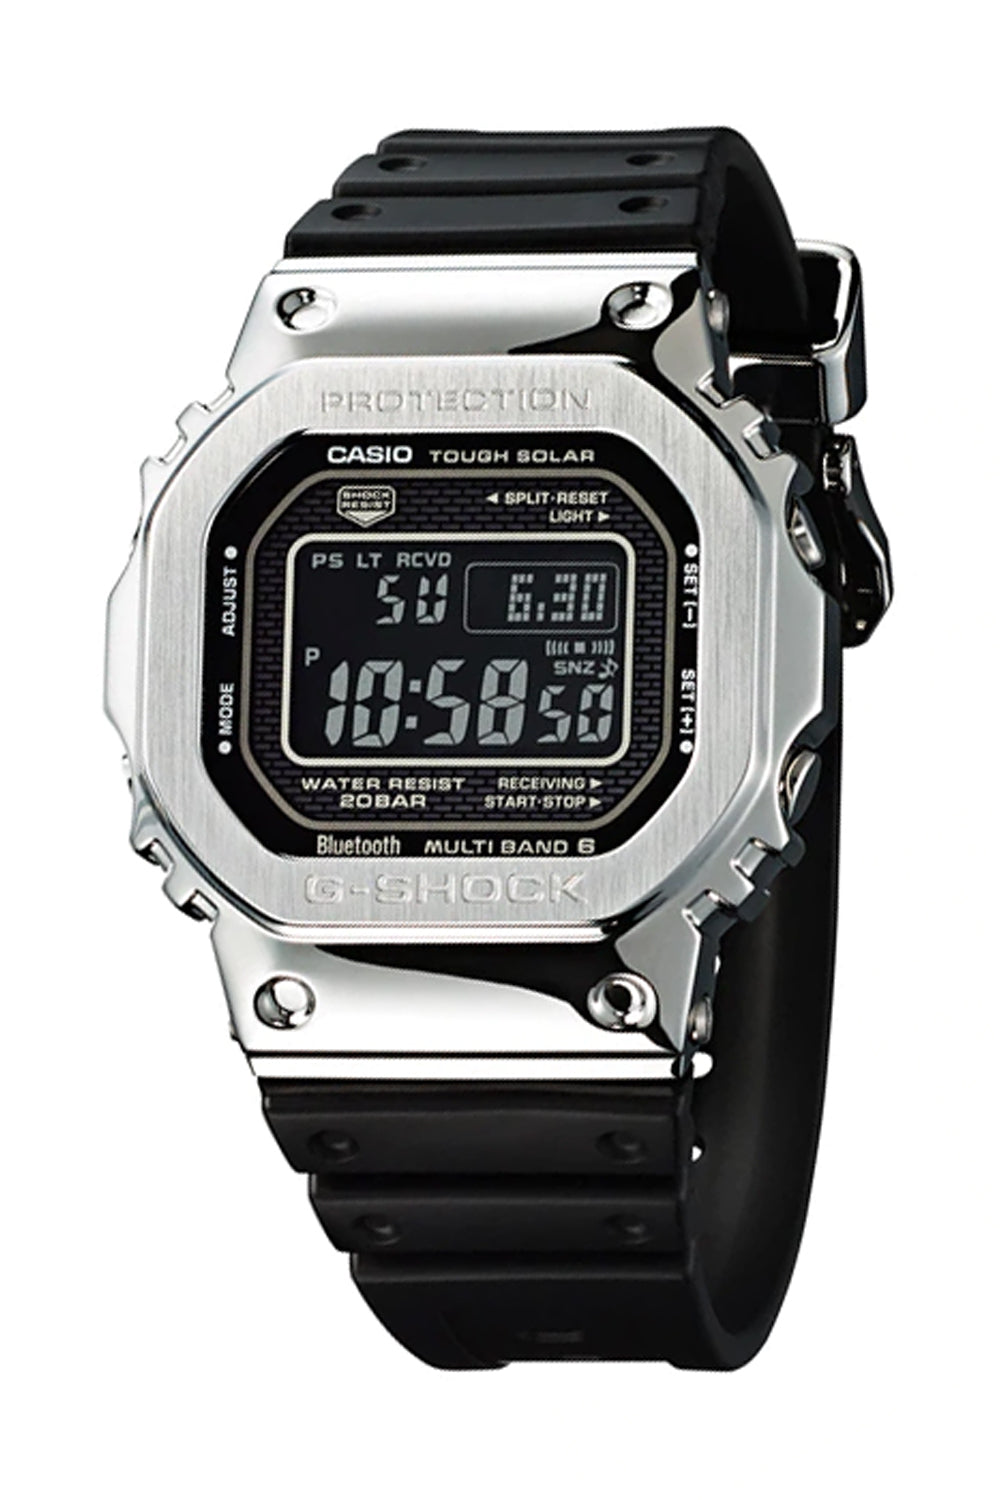 CASIO GMW-B5000-1ER G-Shock